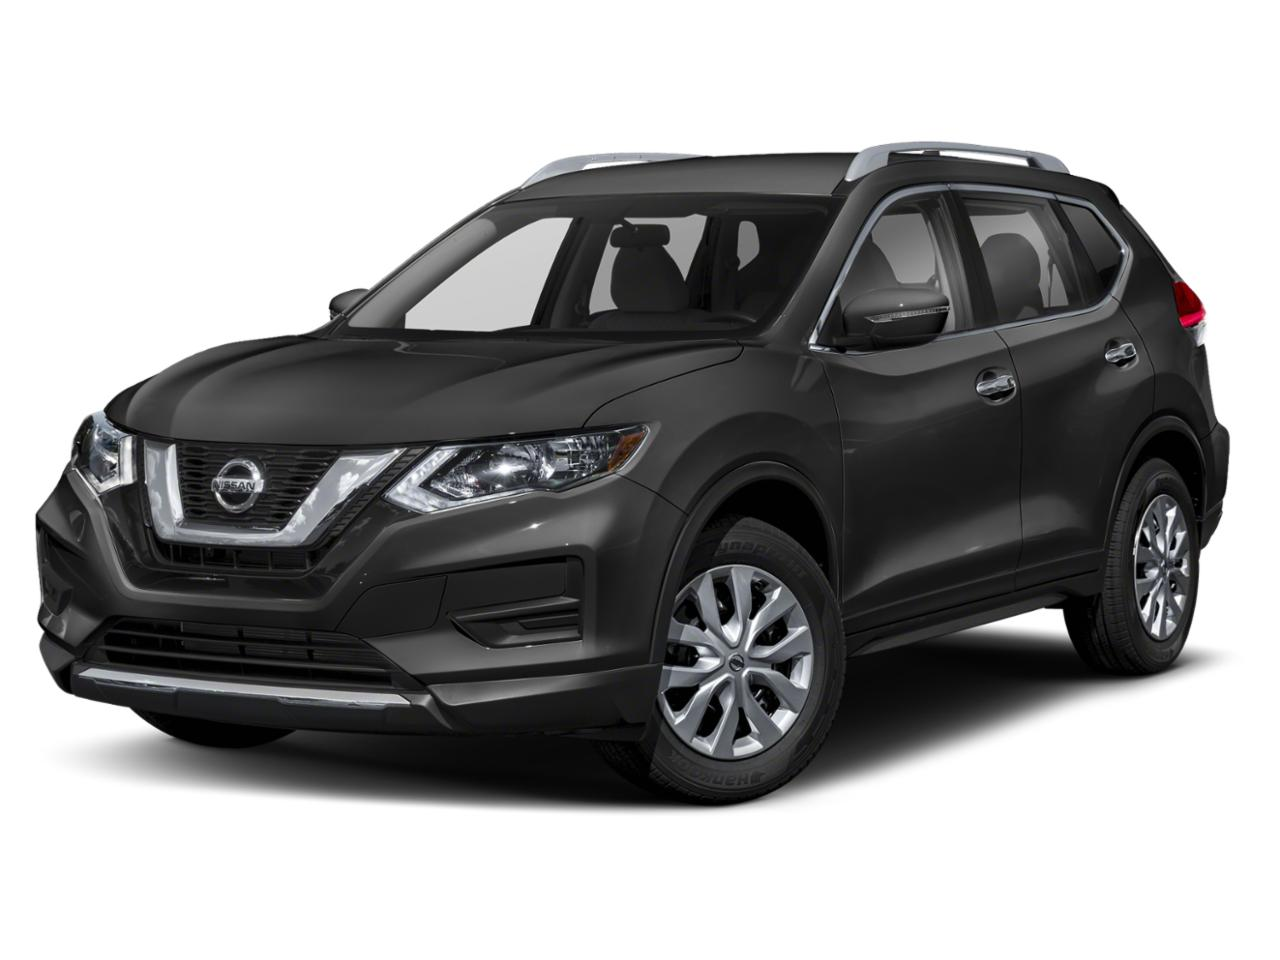 2018 Nissan Rogue Vehicle Photo in Jenkintown, PA 19046